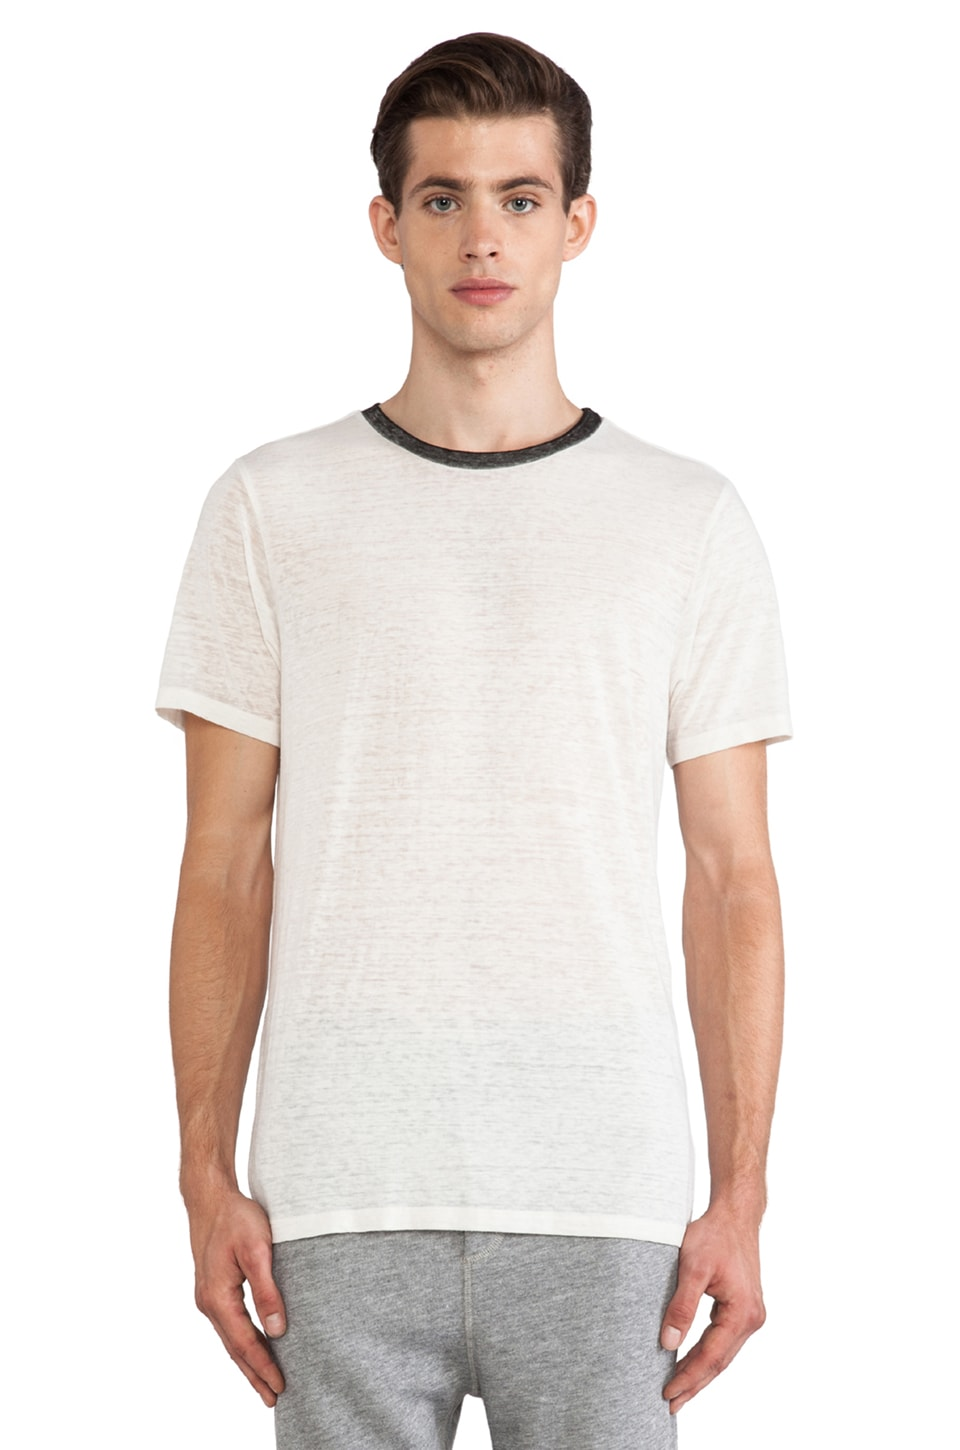 NSF Elliot Tee in White